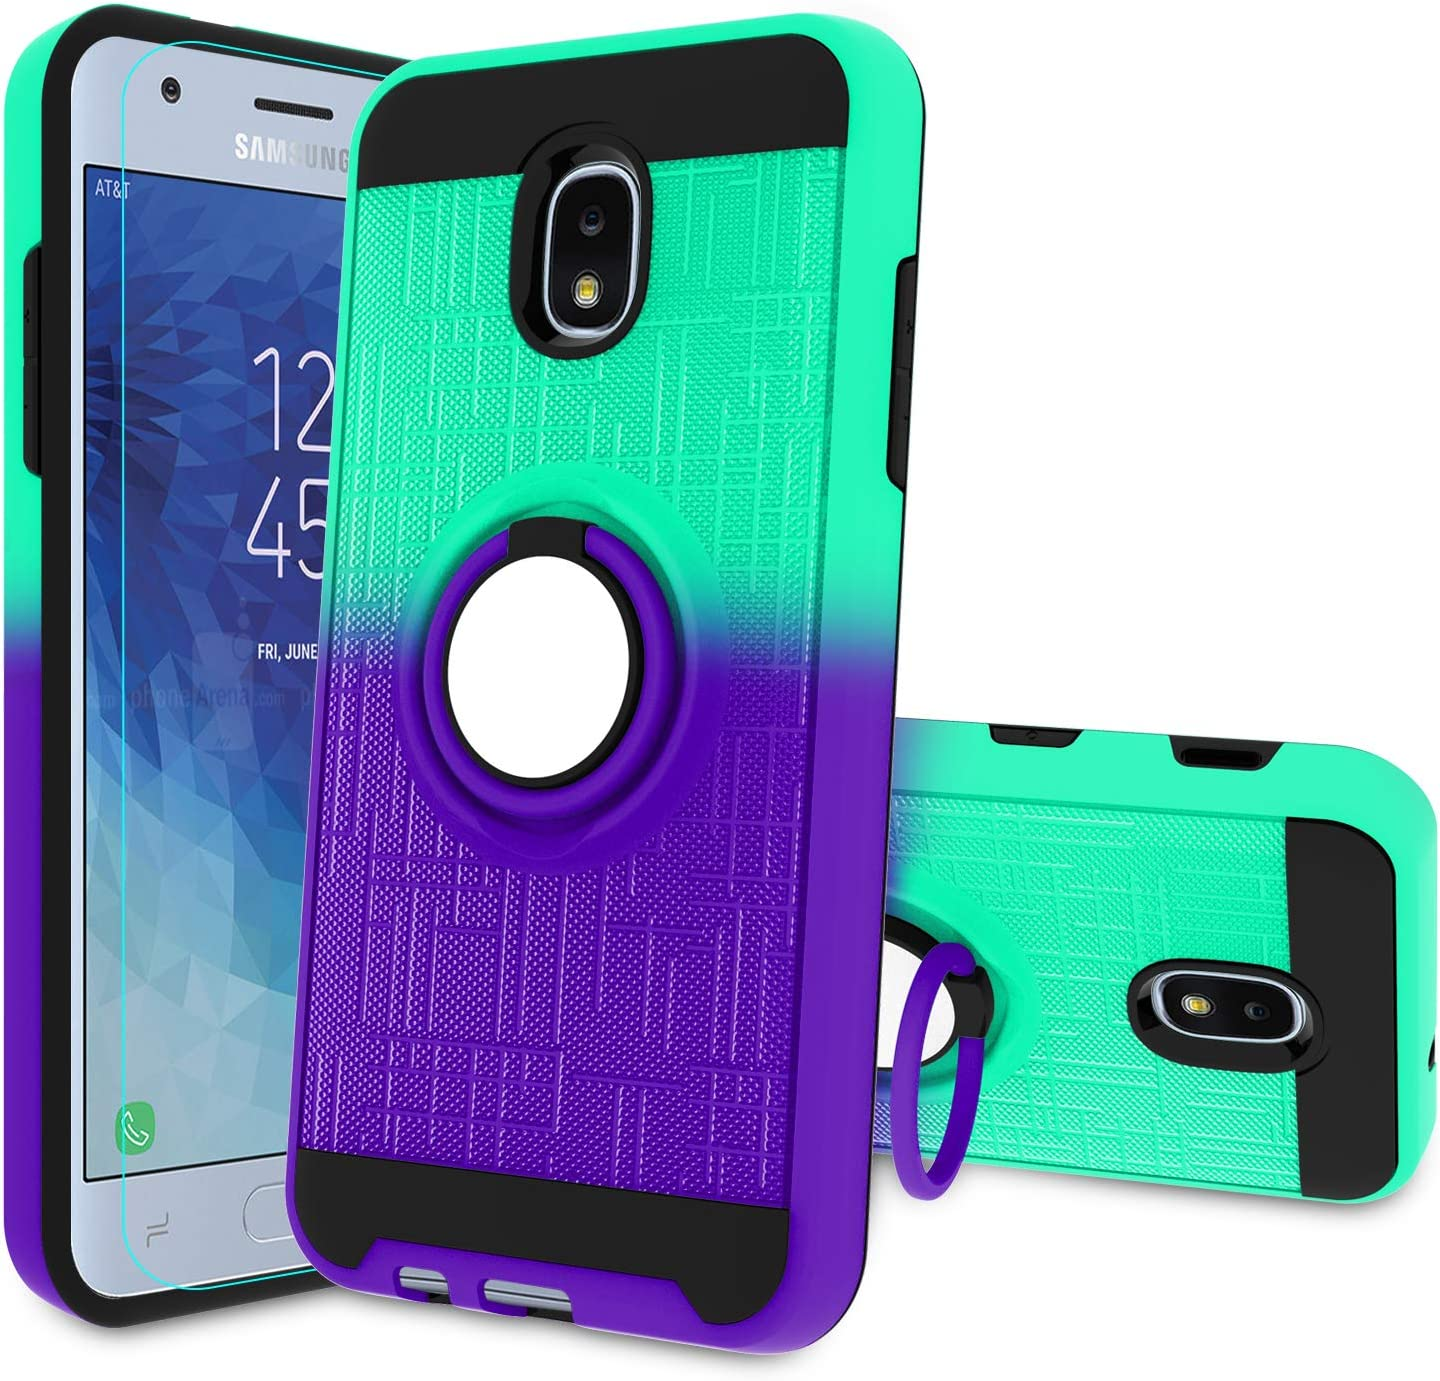 Atump Galaxy J3 2018 Case with HD Screen Protector, Ring Holder Kickstand Phone Cover for Samsung Galaxy J3 Achieve/Amp Prime 3/J3V/Express Prime 3/J3 Star/Sol 3/J3 Orbit/J3 Aura/J3 2018 Mint/Purple